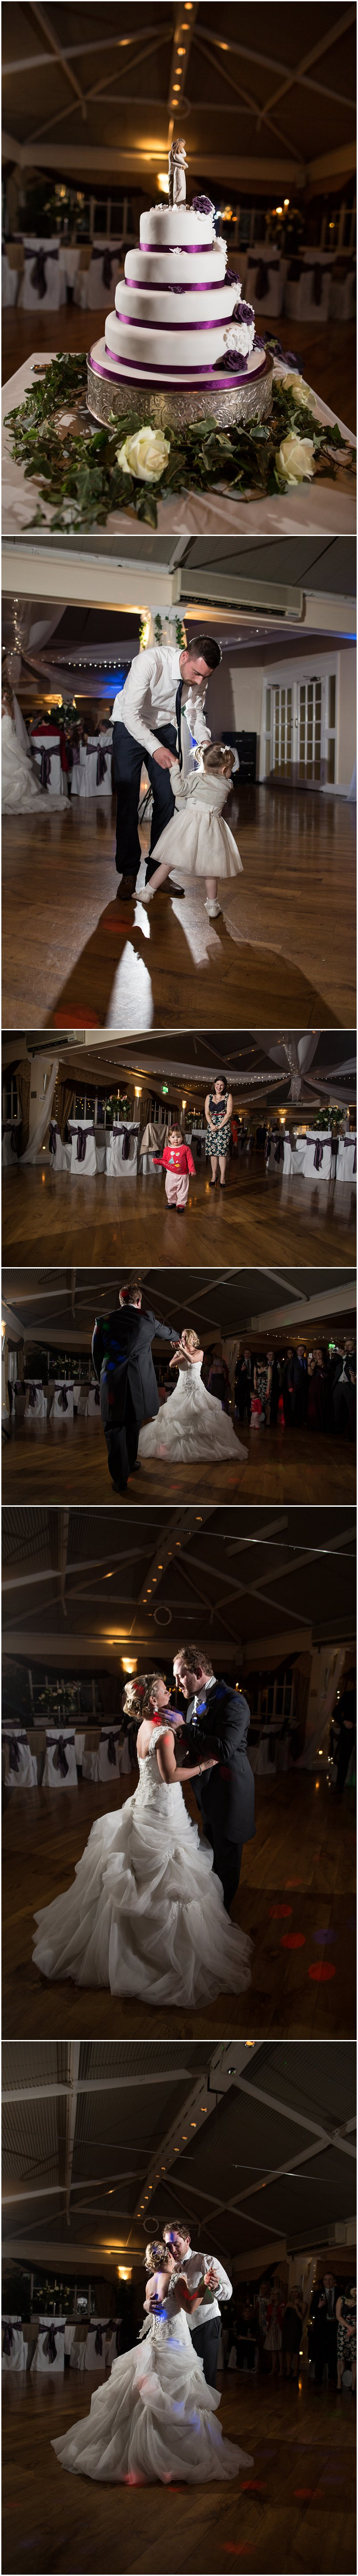 Off camera flash photographer at a wedding at The Mere Court Hotel Cheshire Wedding Photographer